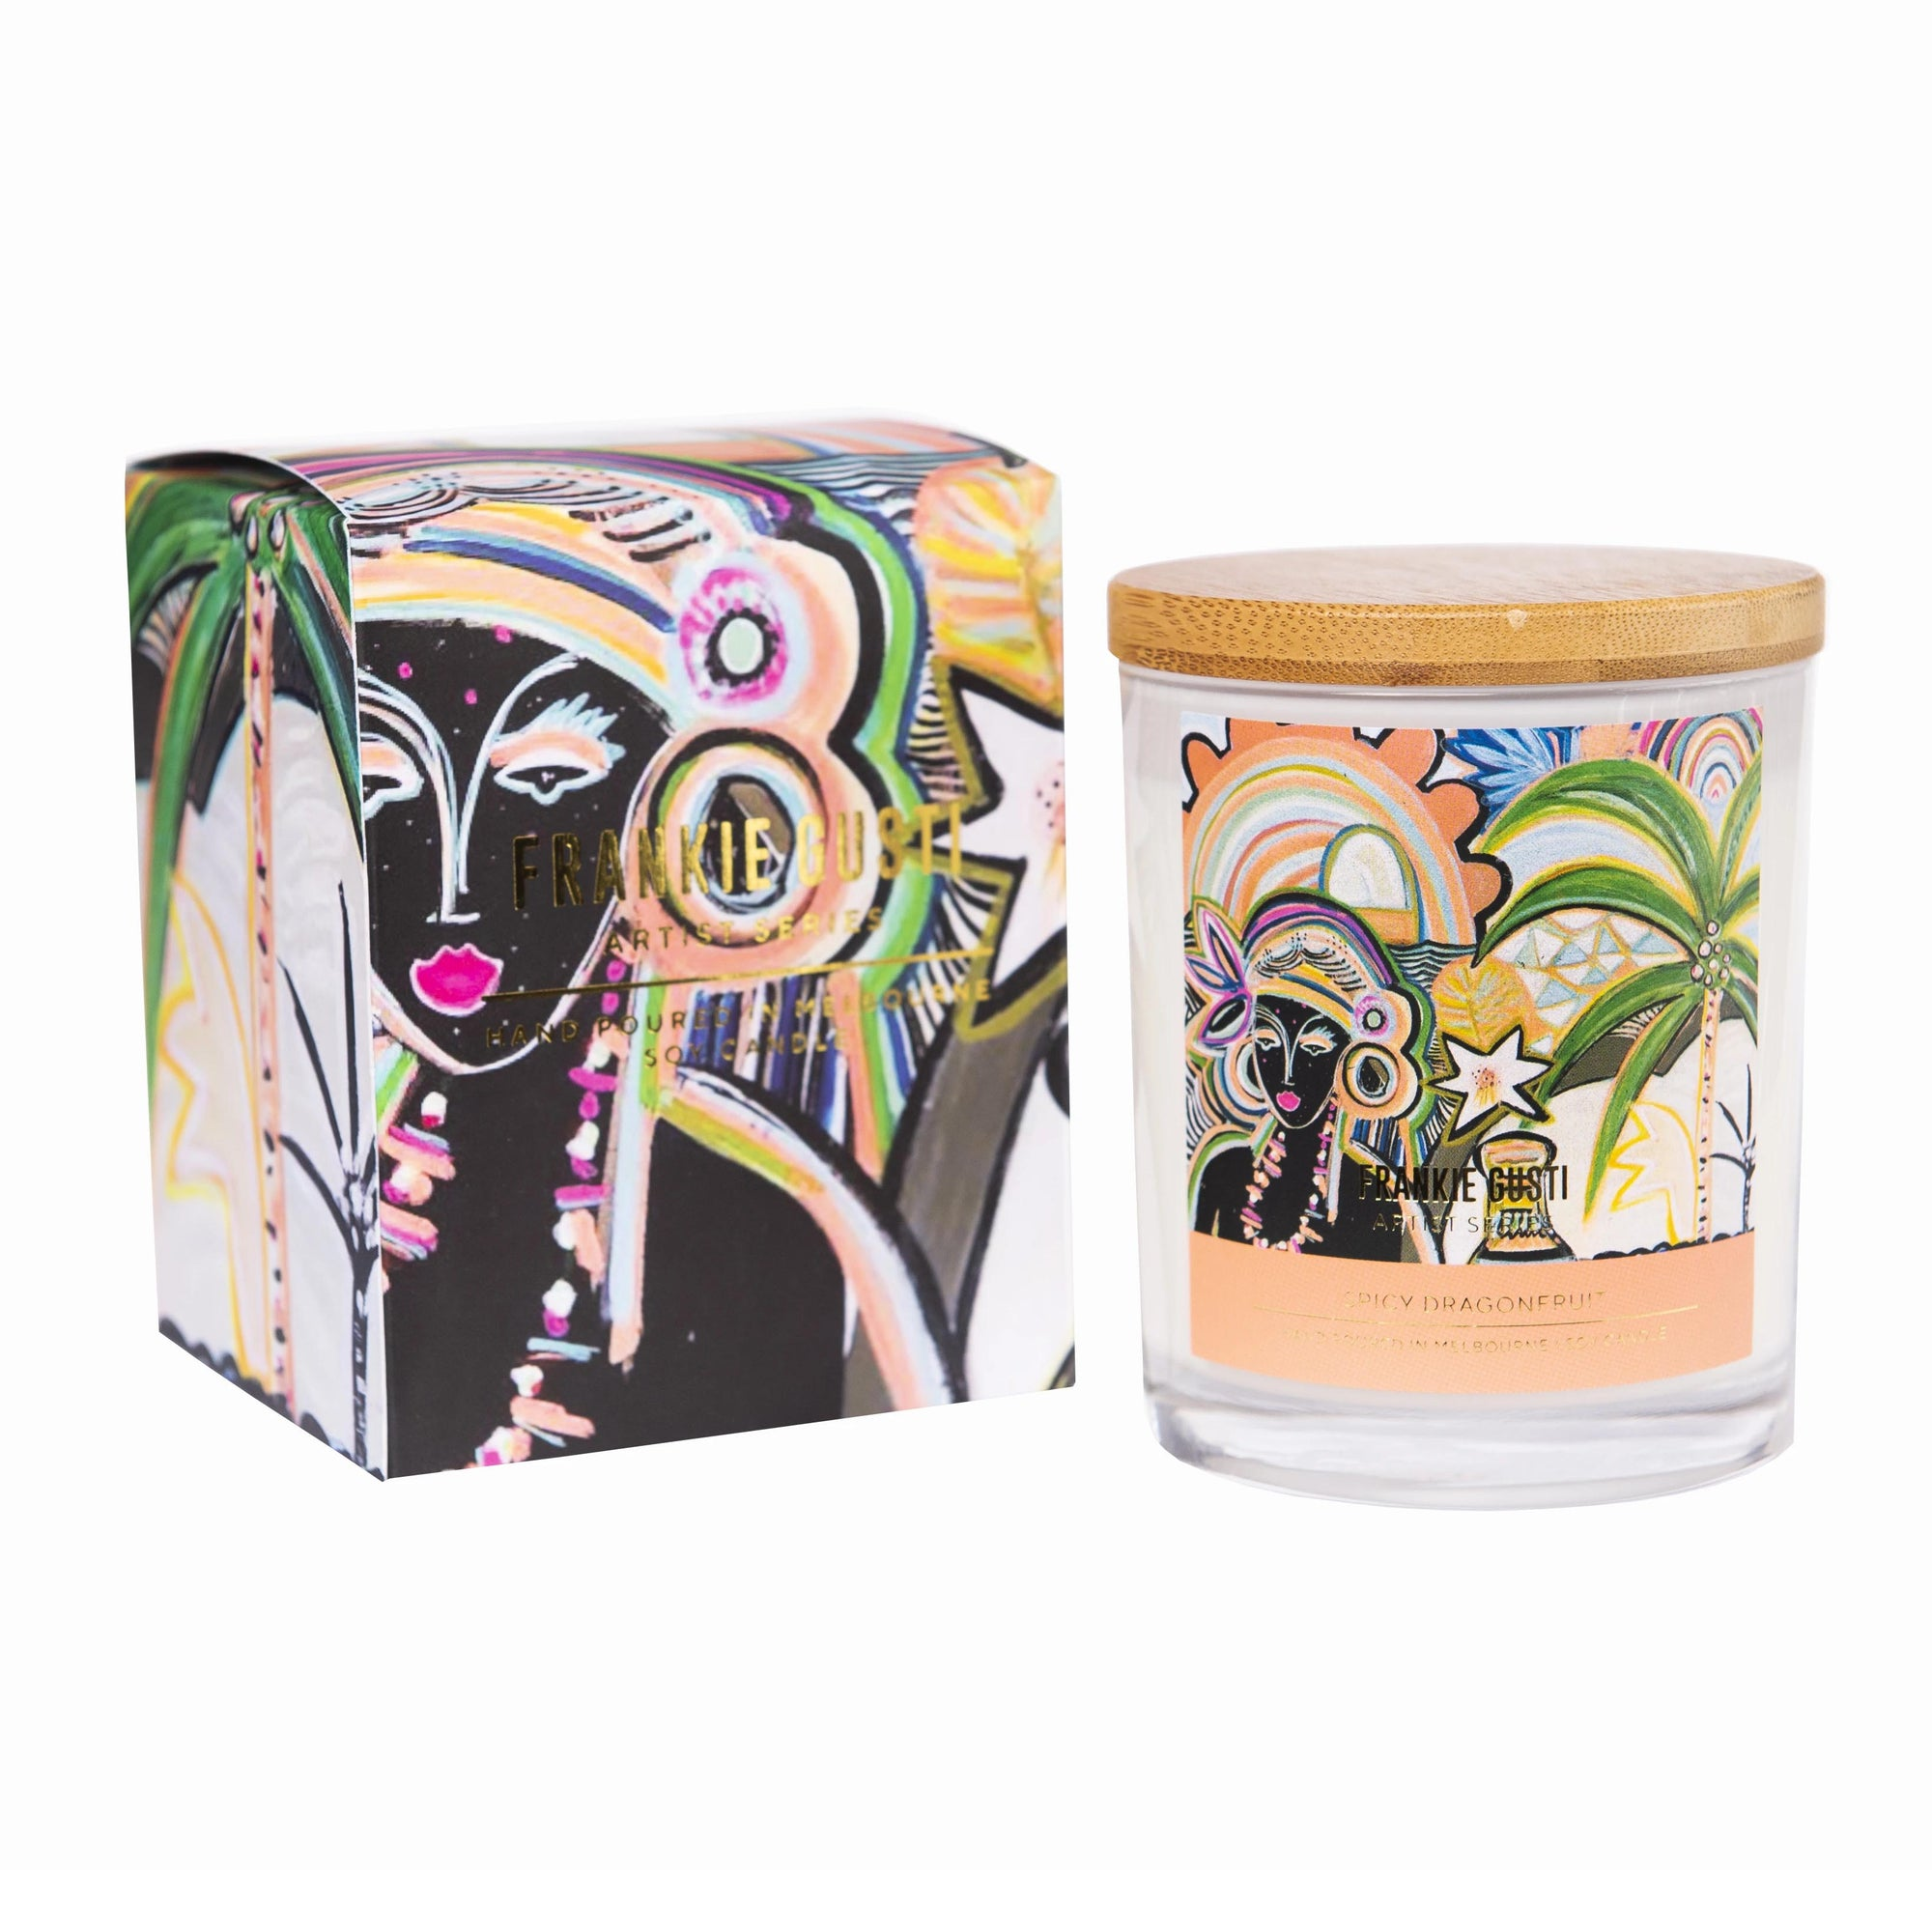 Maree Nic Candle (Spicy Dragonfruit)